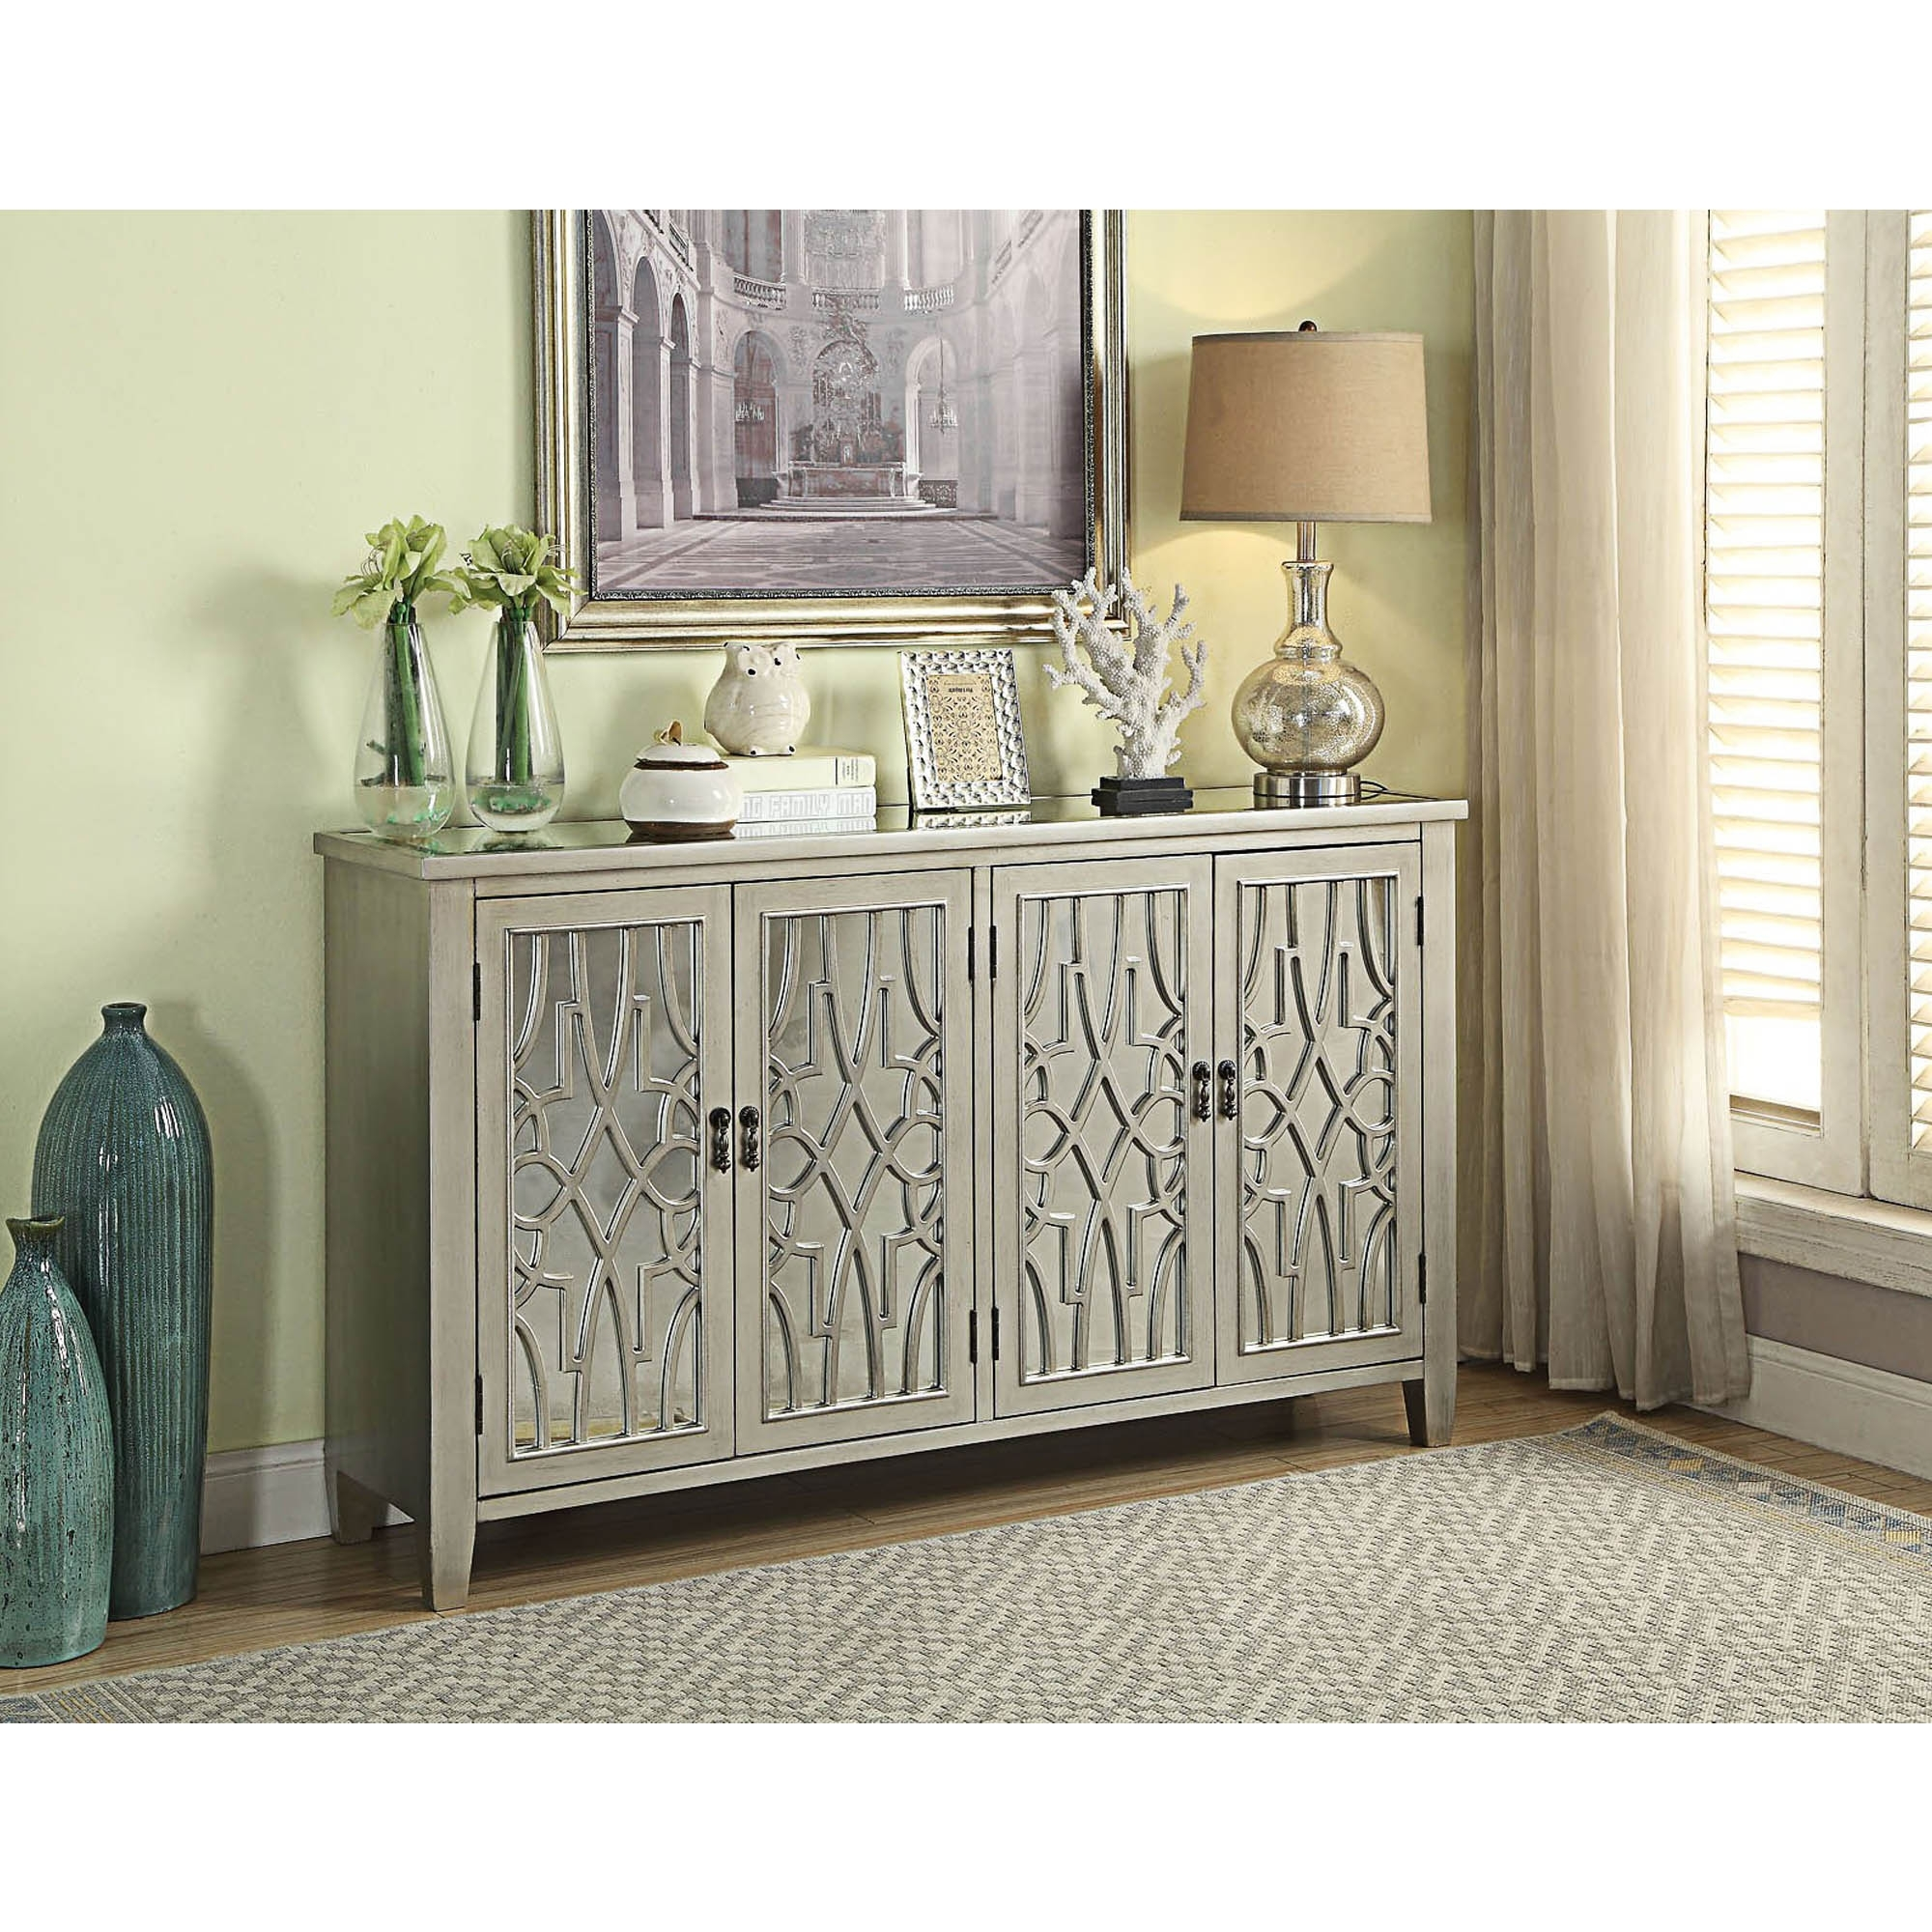 Gallo Mirrored 4 Door Sideboard Sideboard Homesdirect365